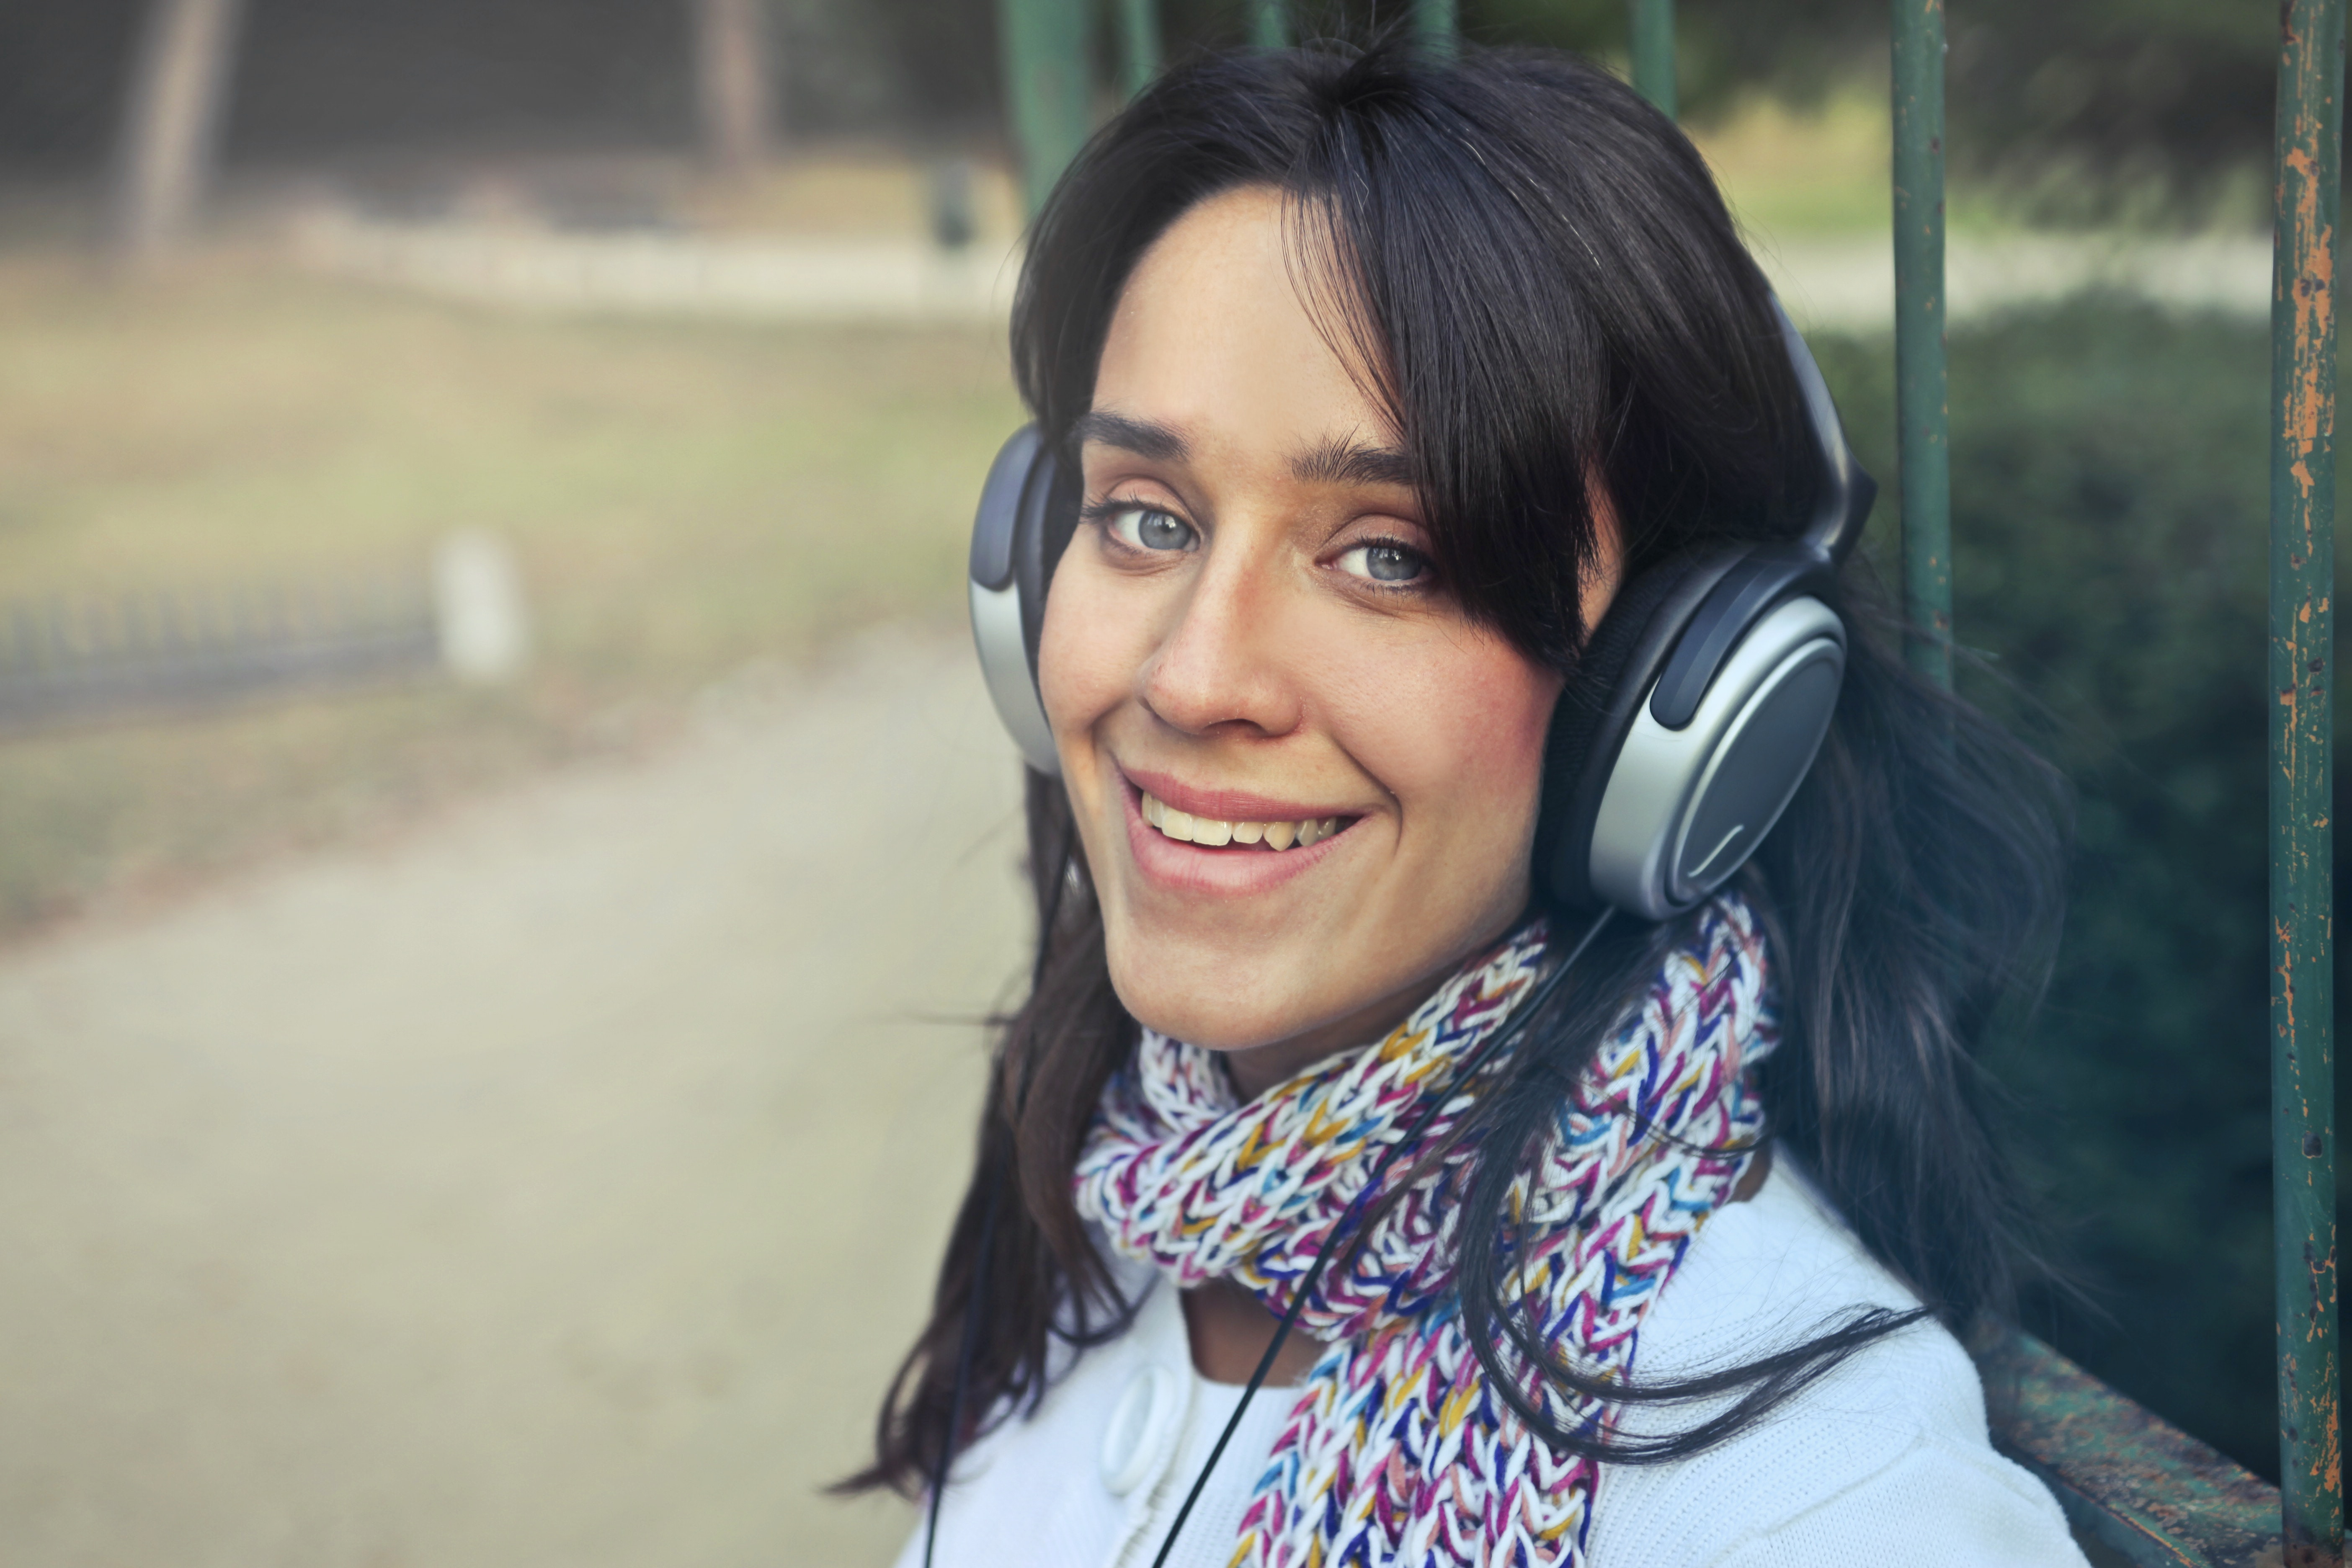 Woman wearing headphones with scarf photo